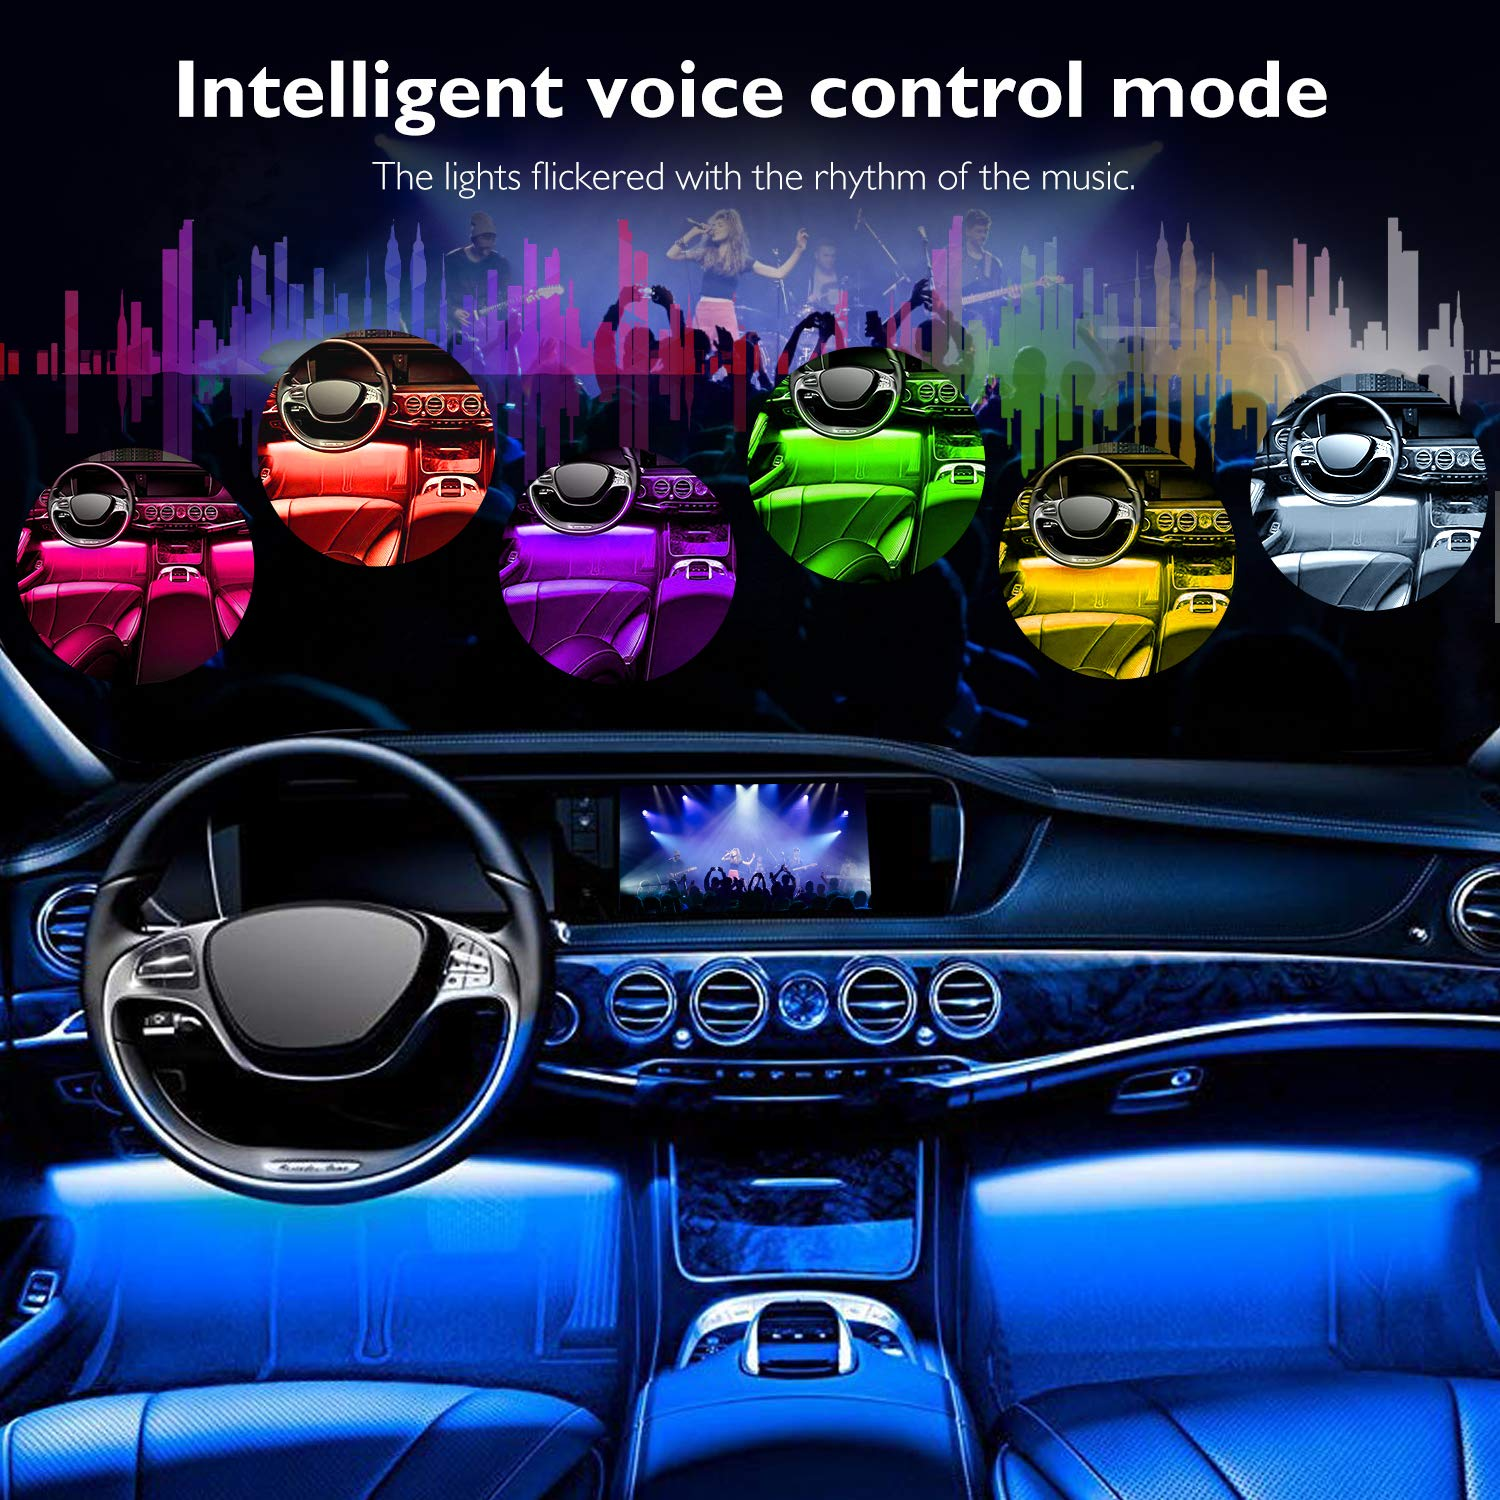 DC 12V 4 Pack Car LED Lights 48 LEDs Music Under Dash Car Lighting Kits with Sound Active Function and Remote Control Multicolor LED Car Lights with Car Charger Interior Car Lights